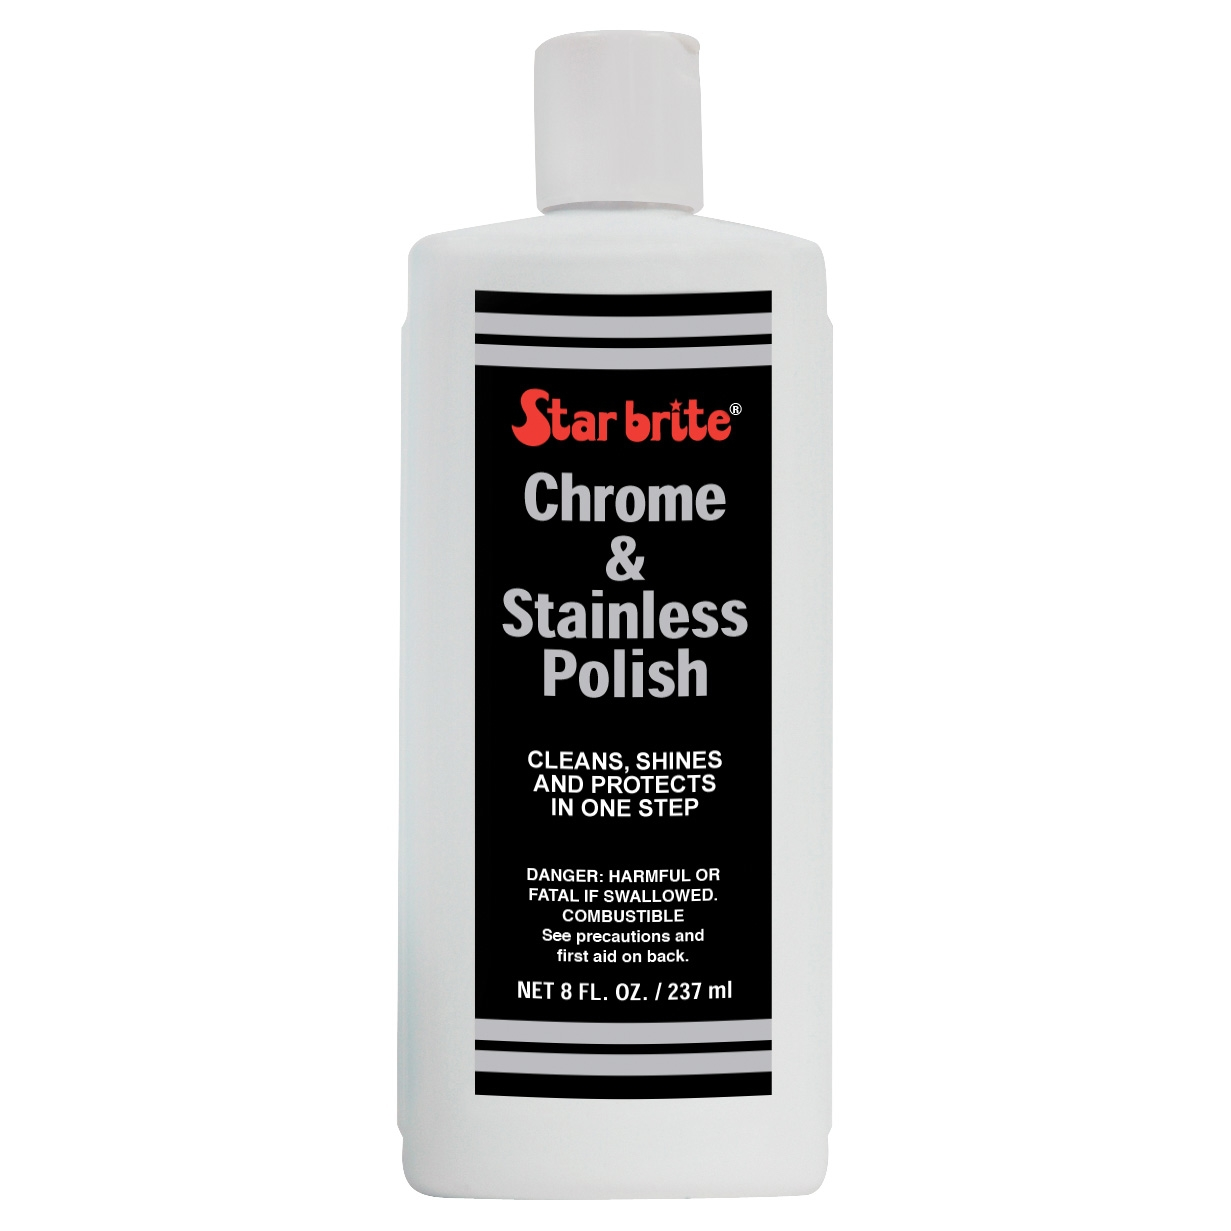 STAR BRITE Chrome & Stainless Polish Bottle  8 oz #713441